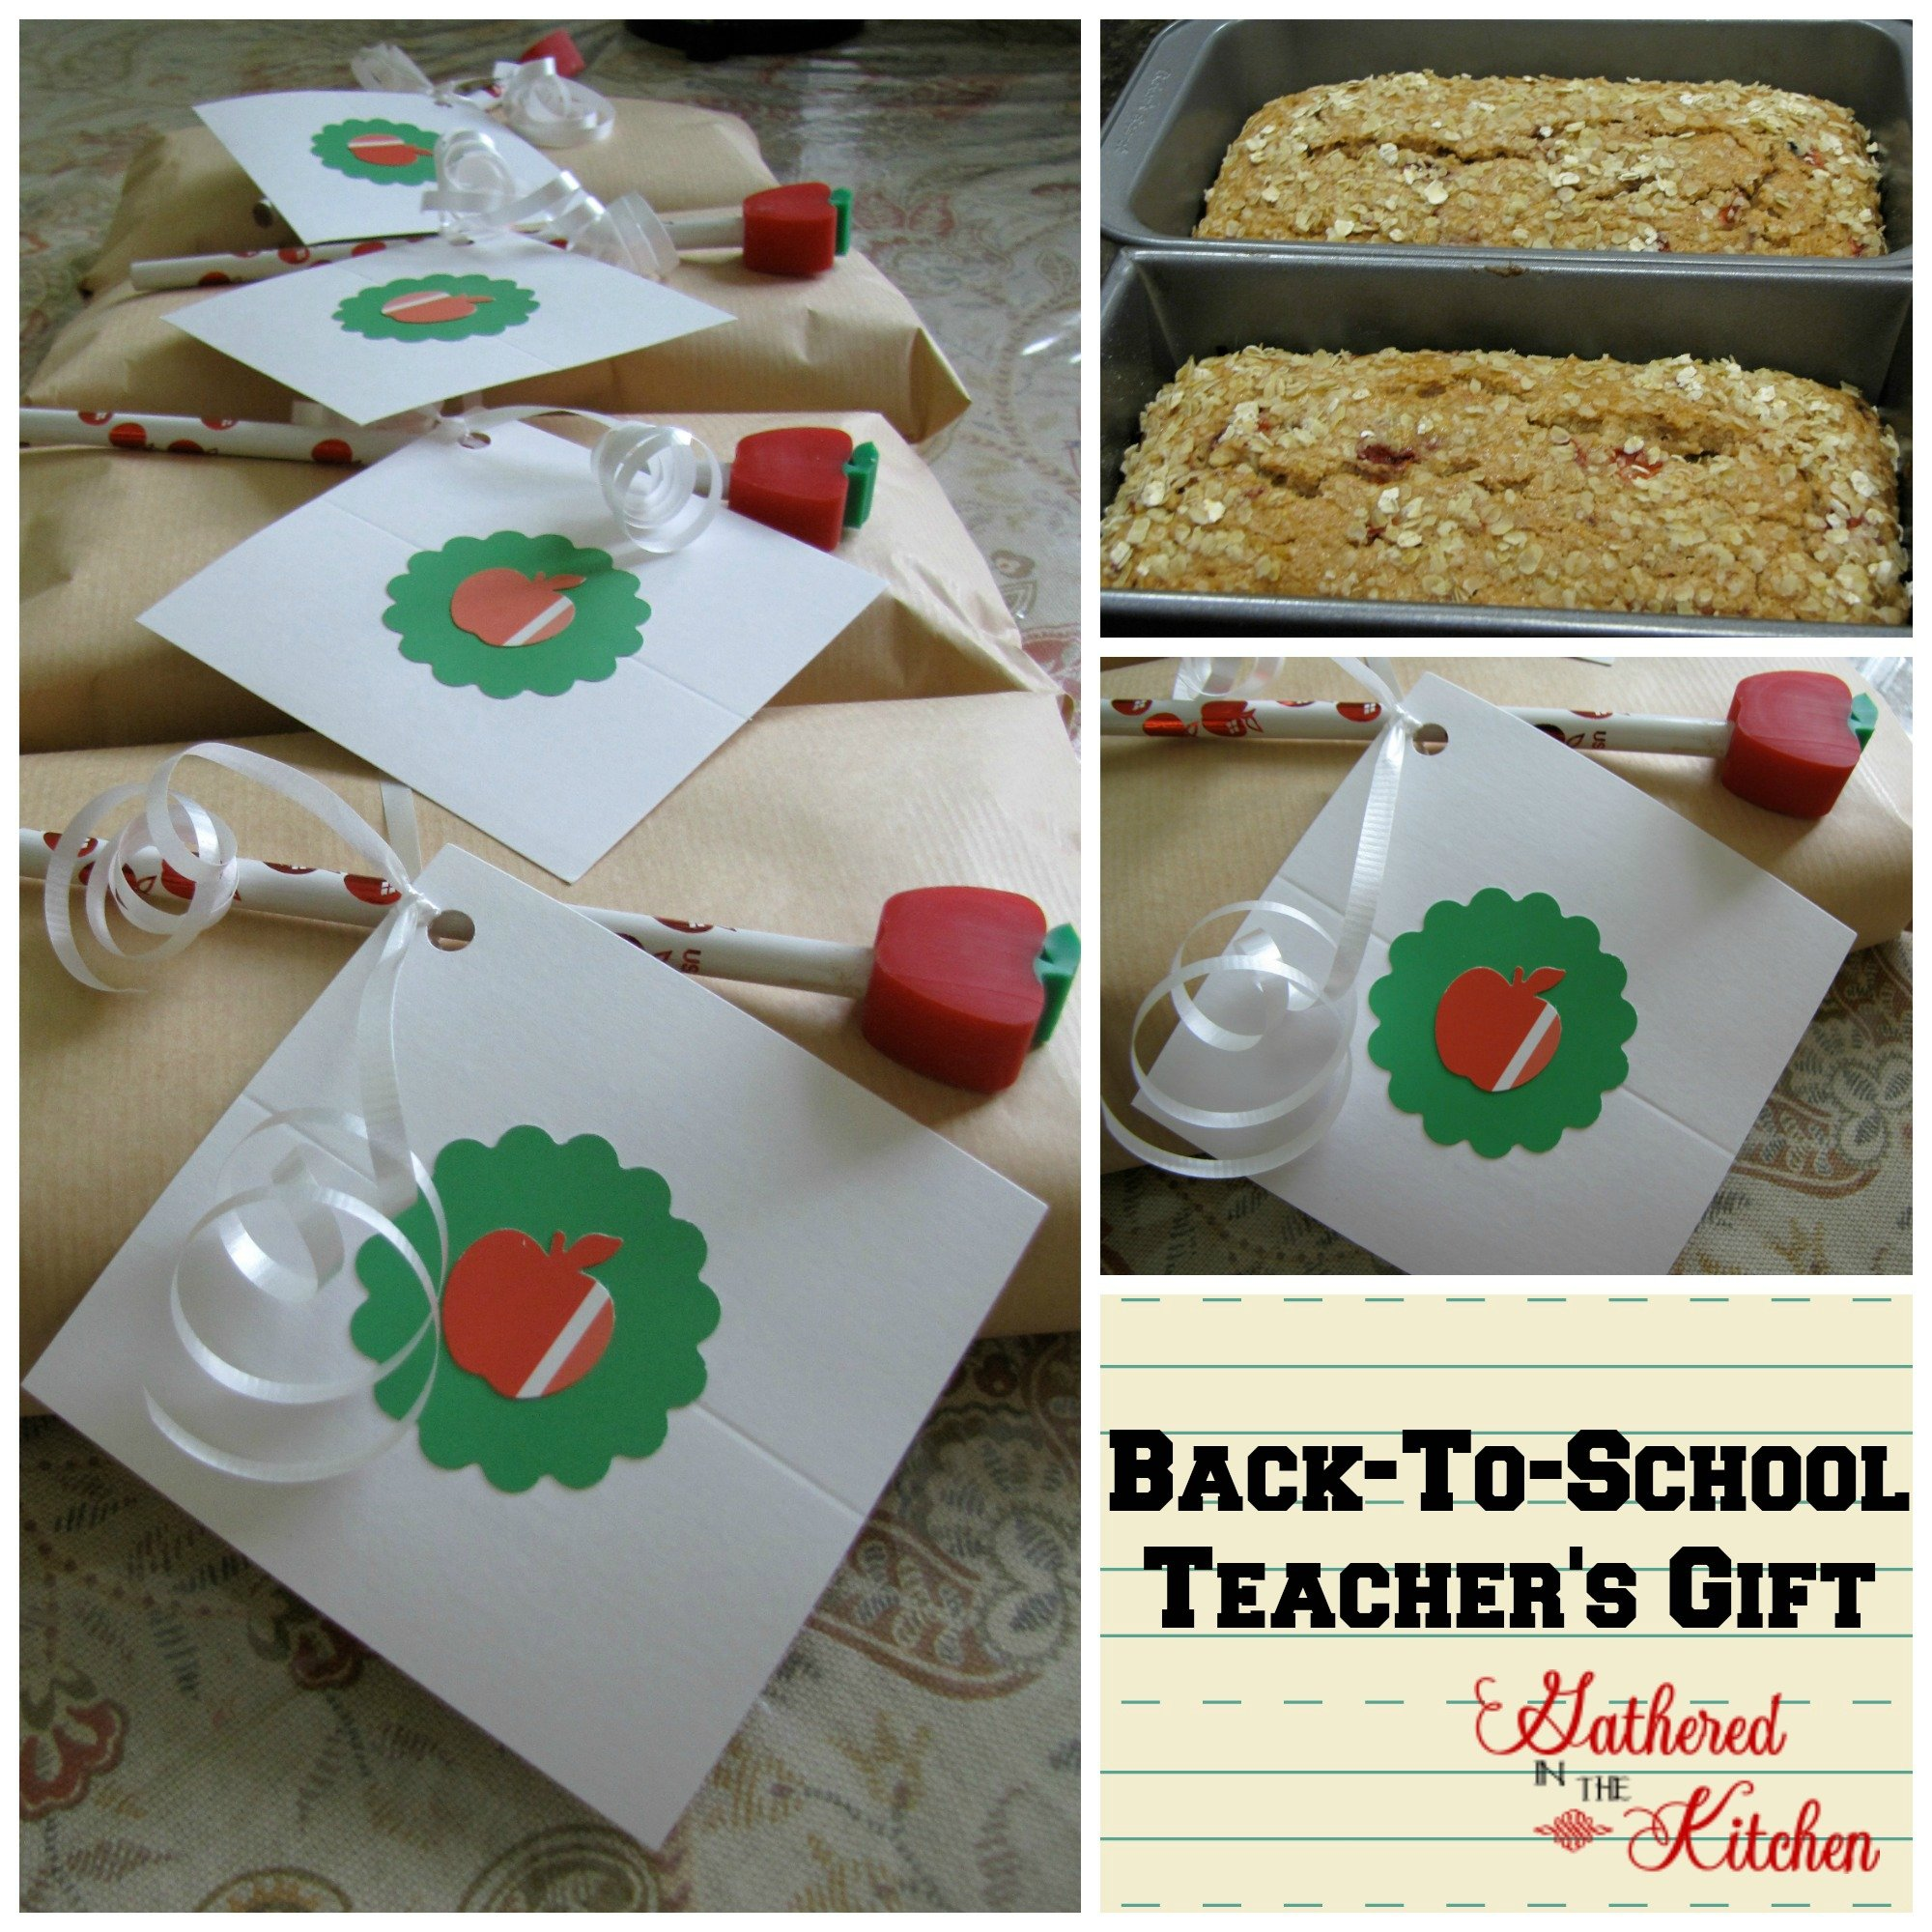 Back to School Teacher's Gifts